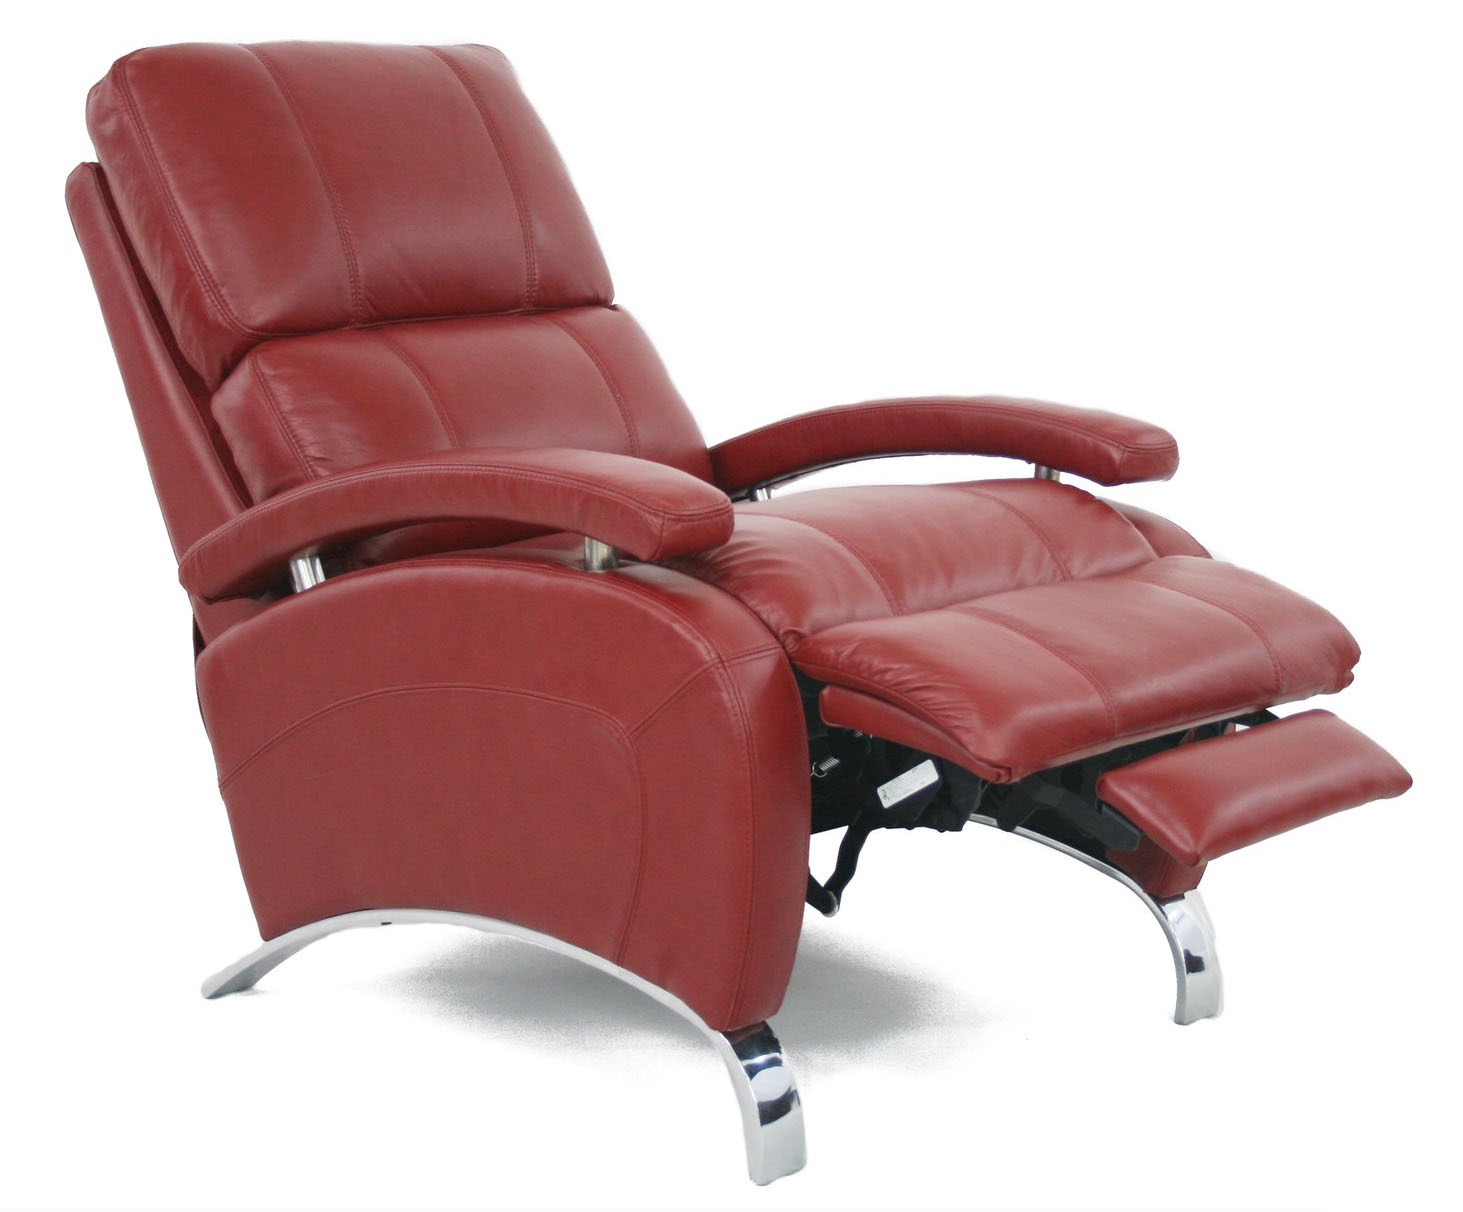 barcalounger oracle ii leather recliner chairbarcalounger oracle ii recliner chair leather recliner chair. beautiful ideas. Home Design Ideas